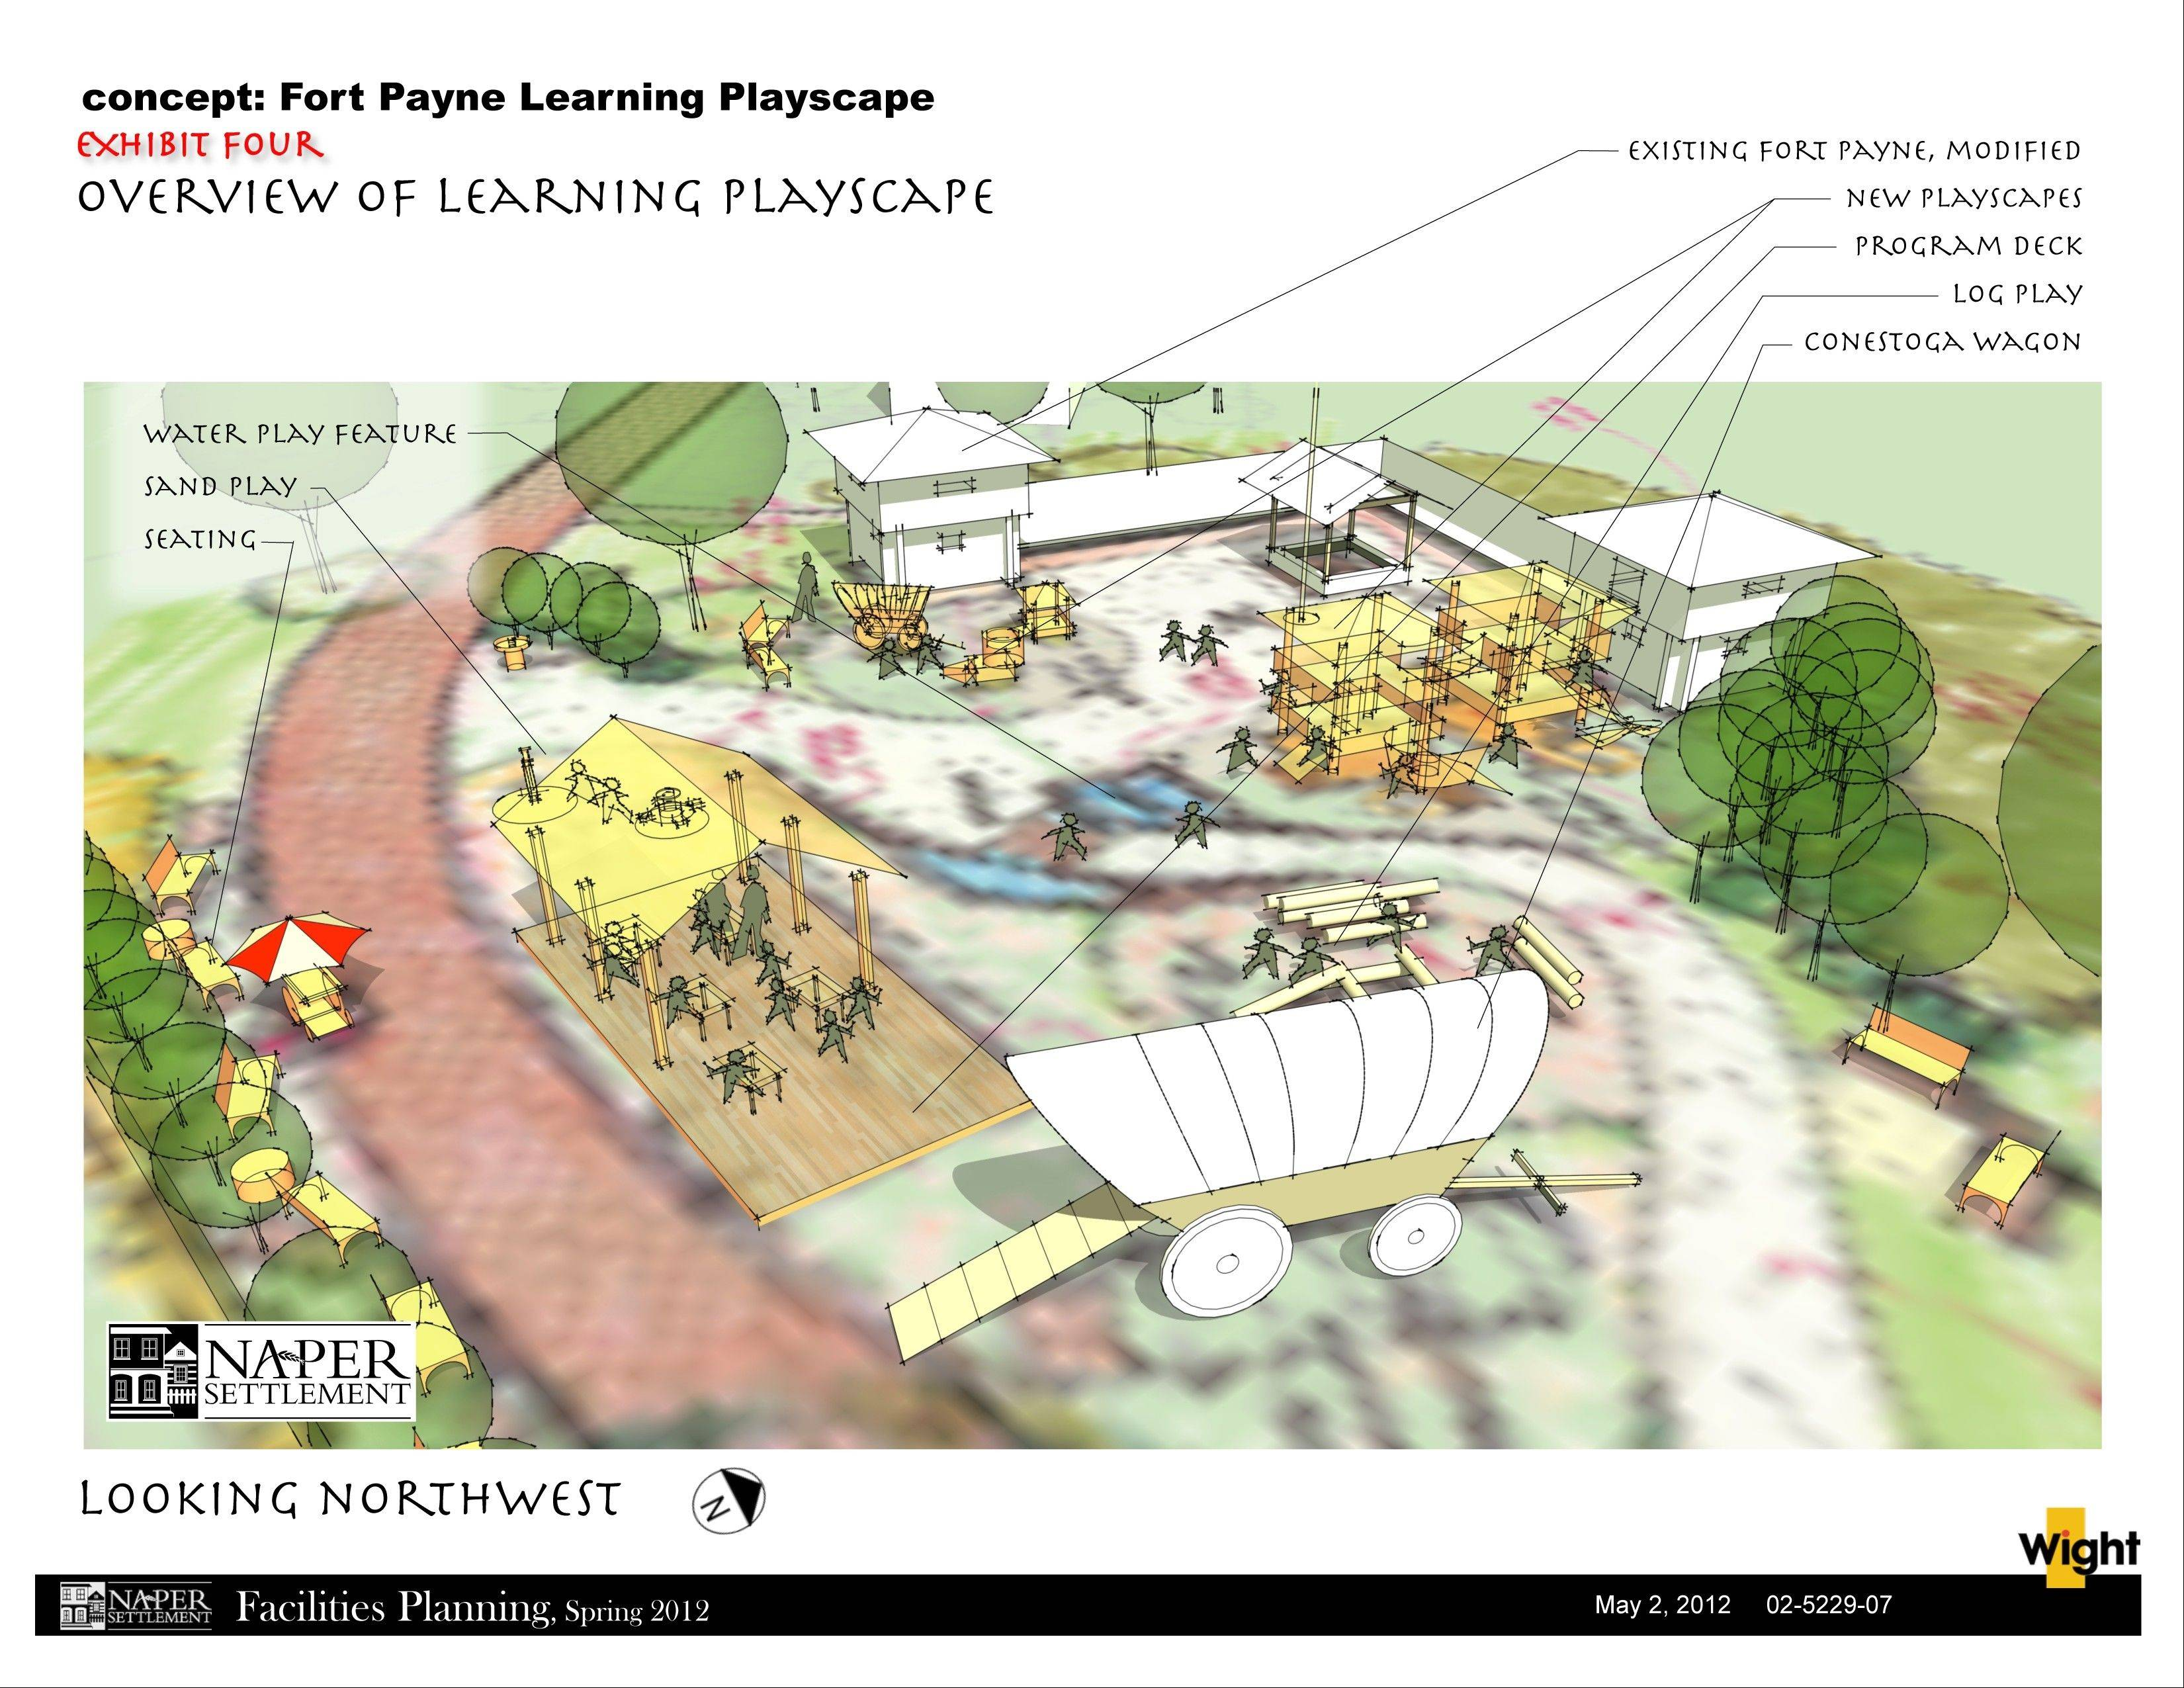 Architects have begun designing the $340,000 Fort Payne Learning Playscape, but officials say it won't be built until the settlement raises the full cost of the project.